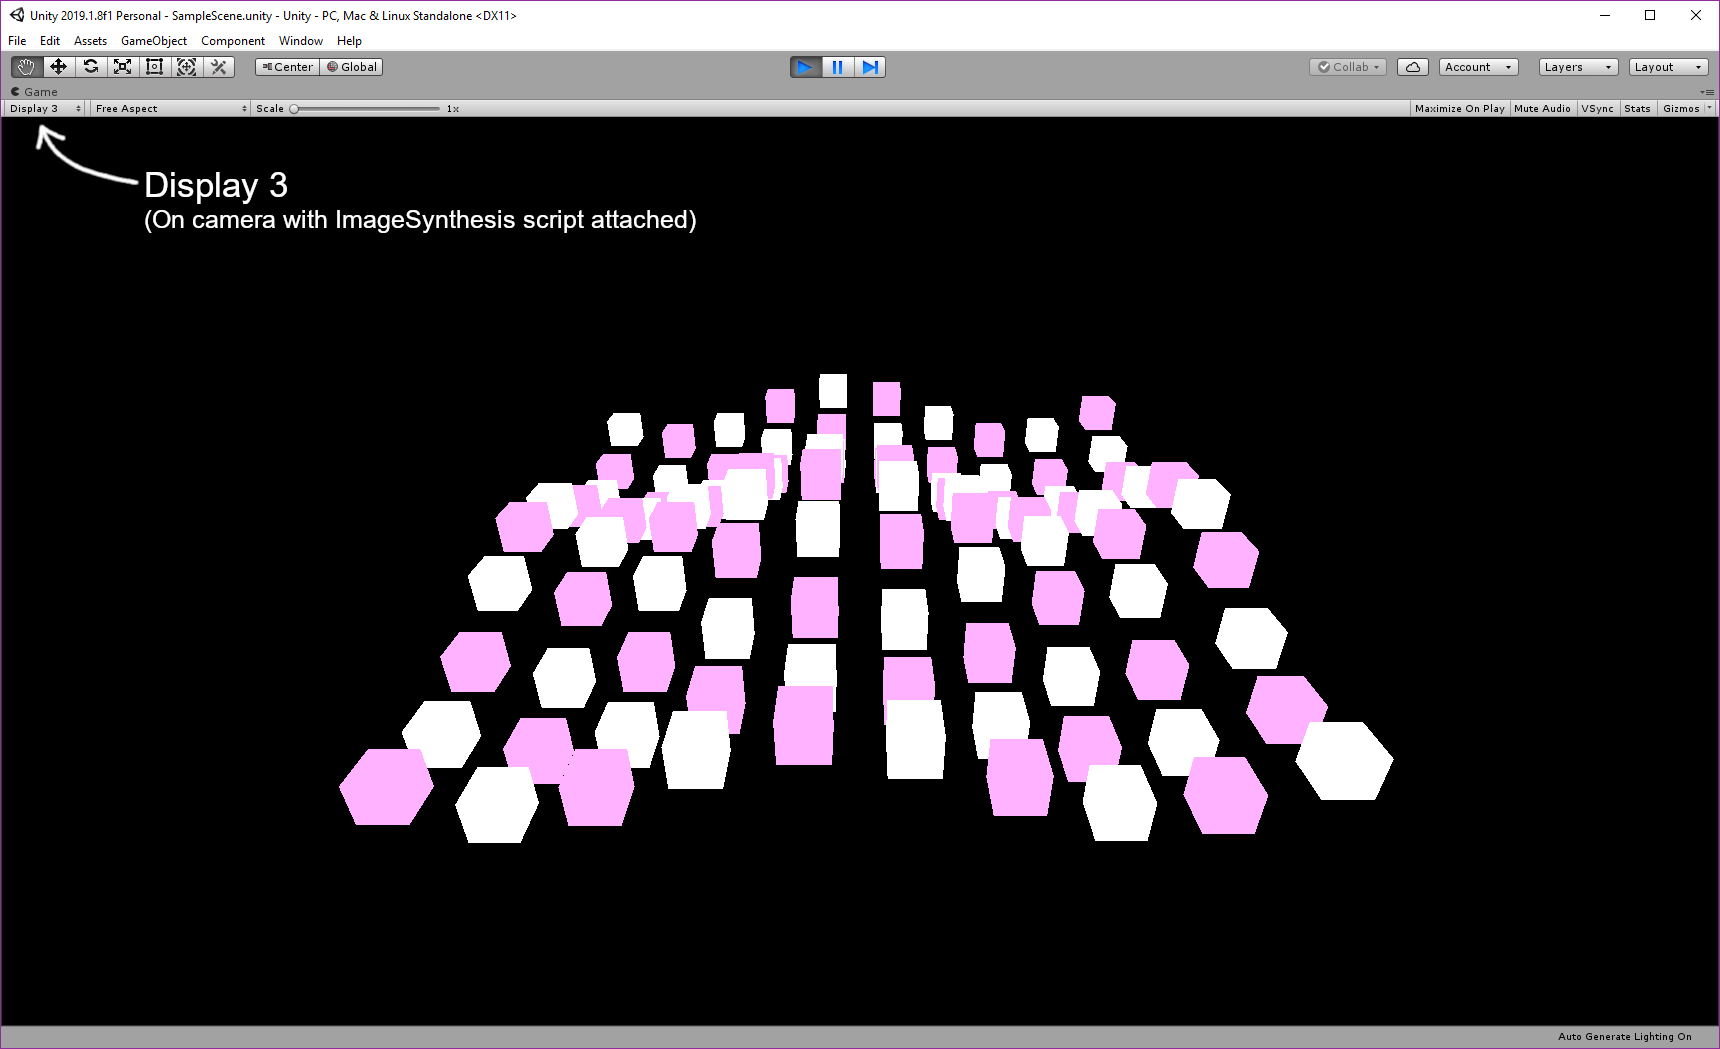 Display 3 will show objects segmented by  layer , rather than object id.